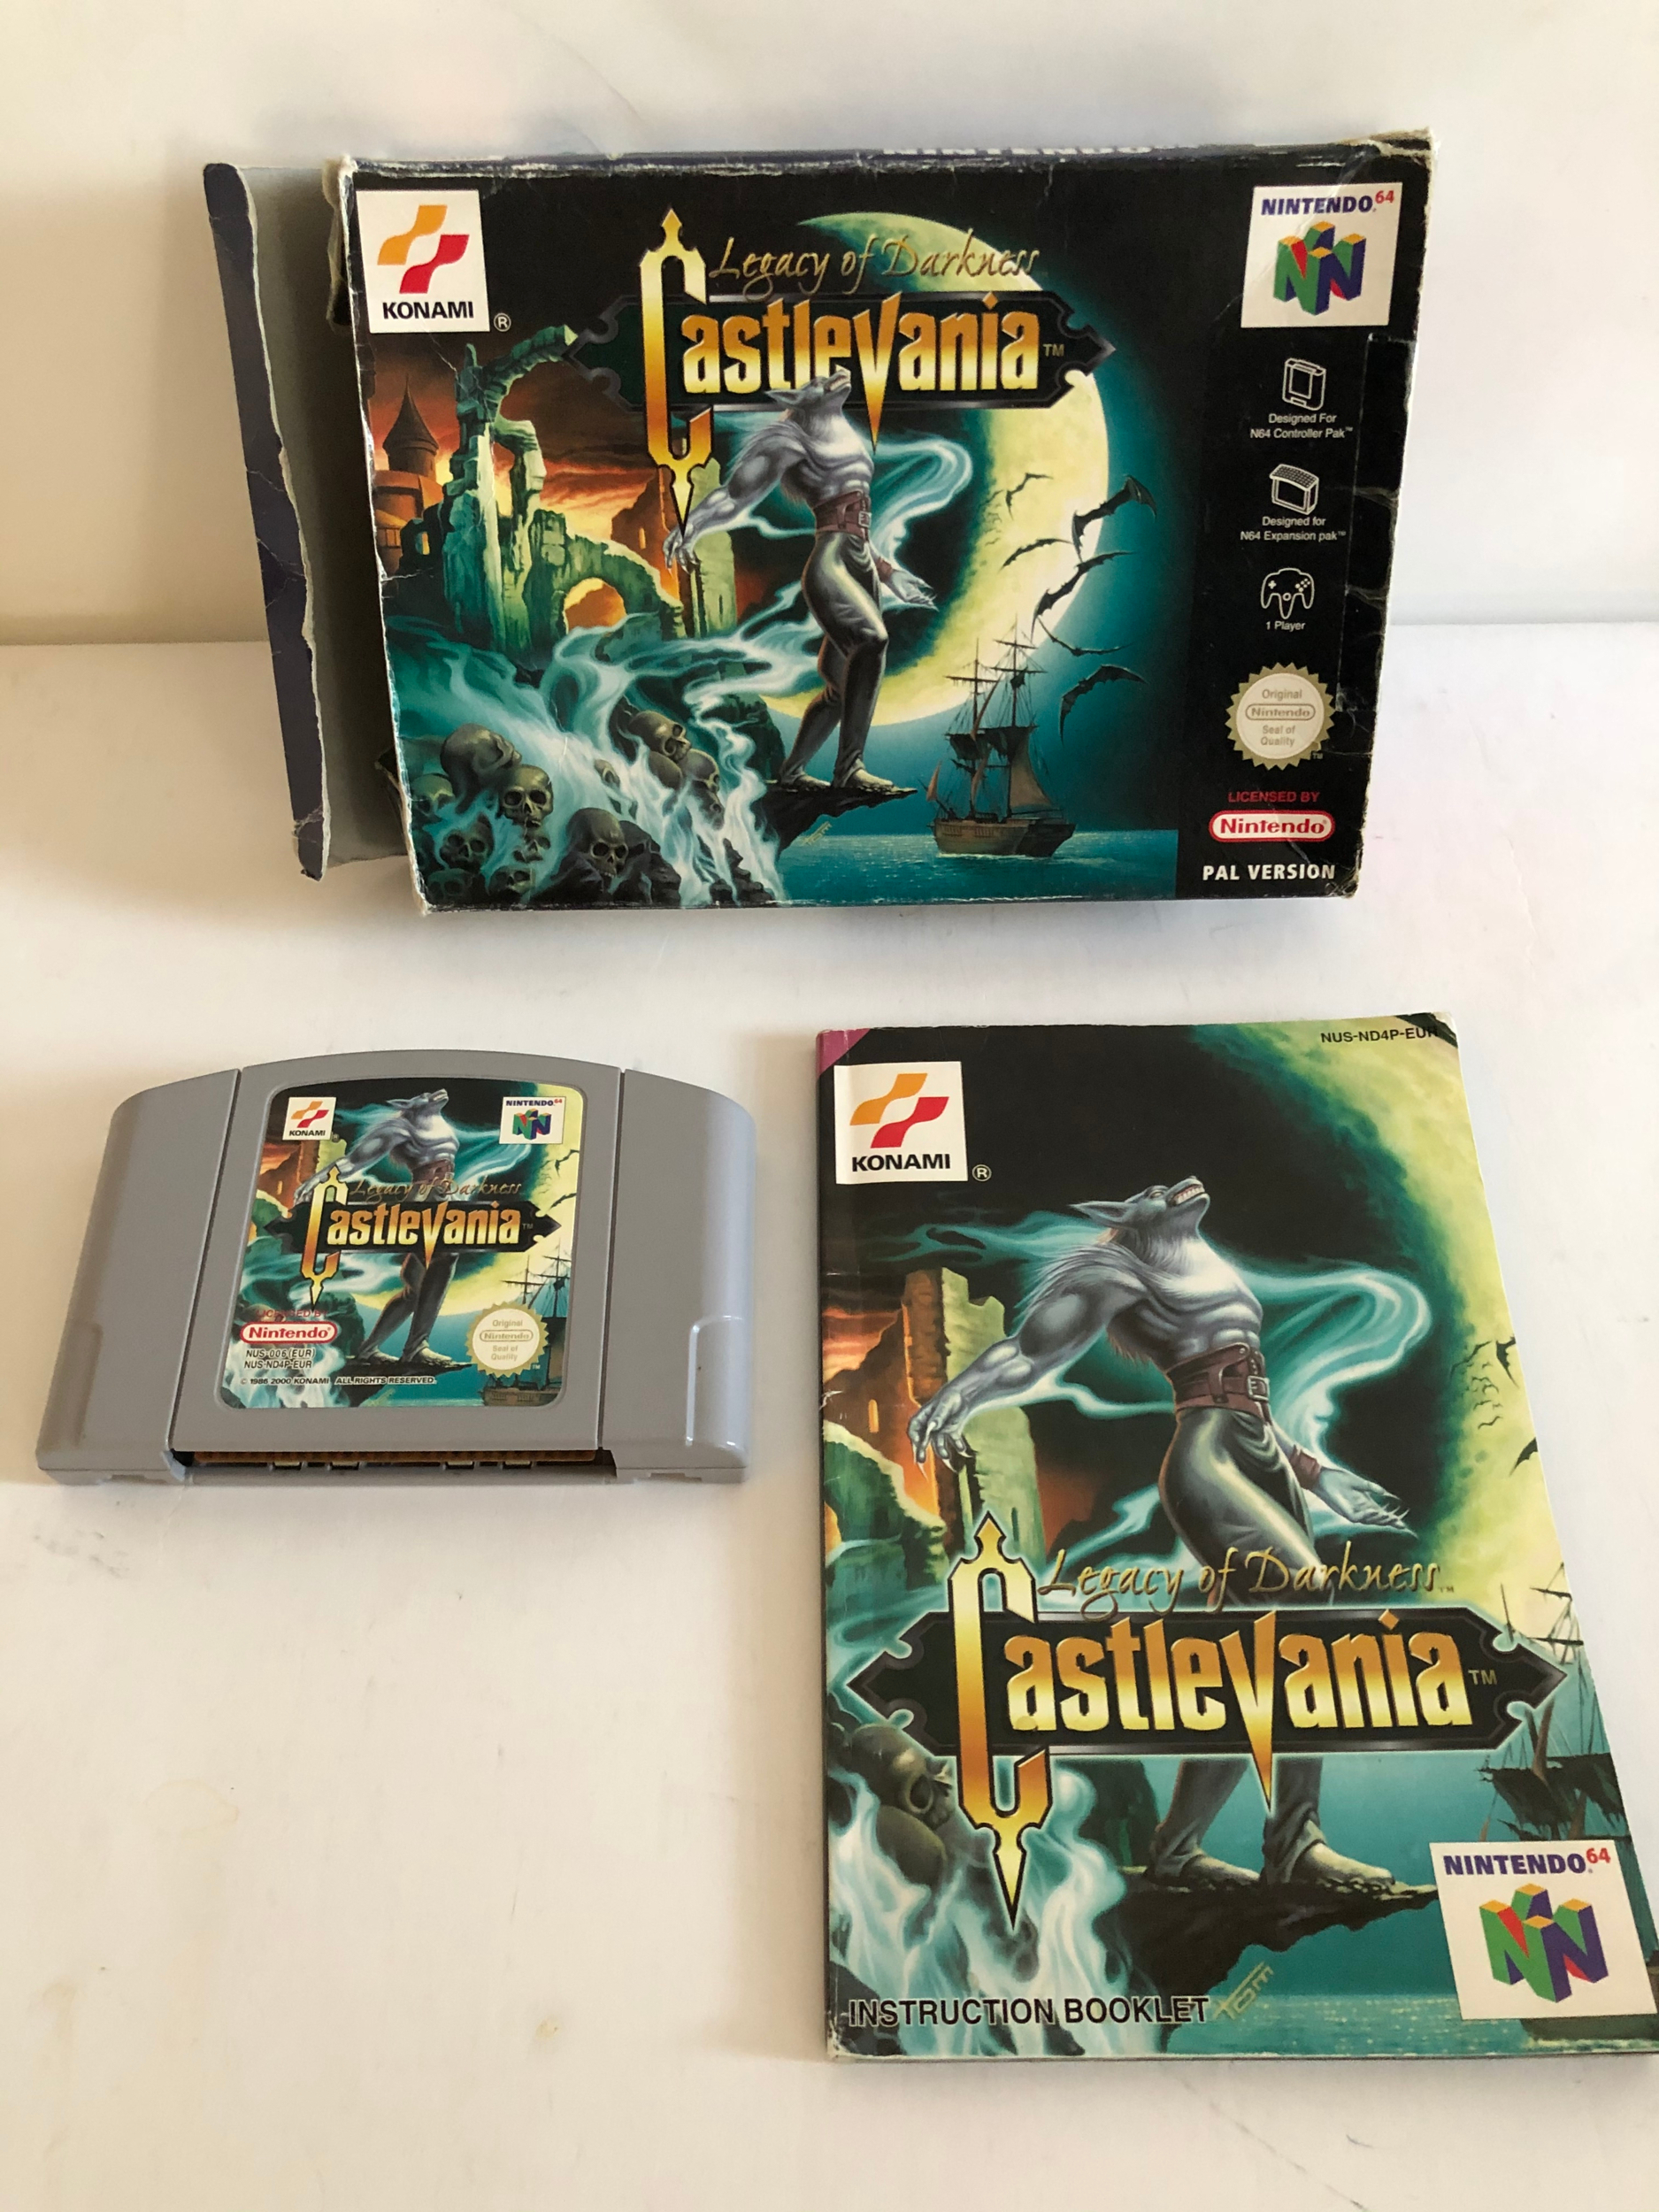 Castlevania Lagacy of Darkness